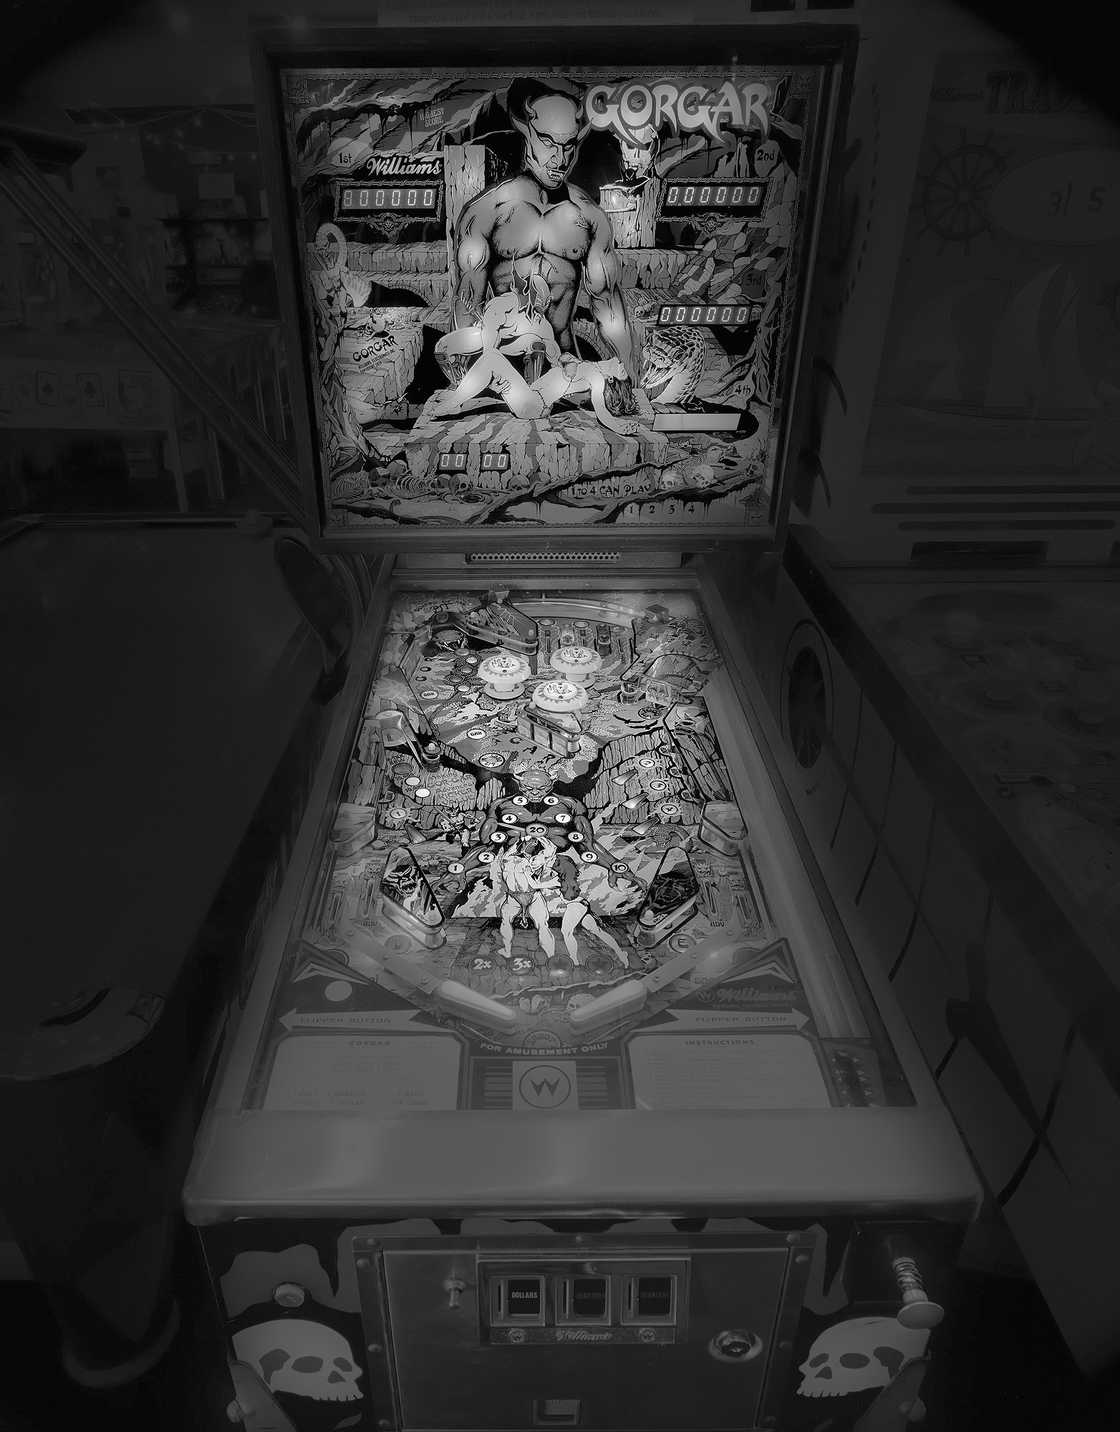 Pinball Machines - Documenting vintage pinball machines in arcades